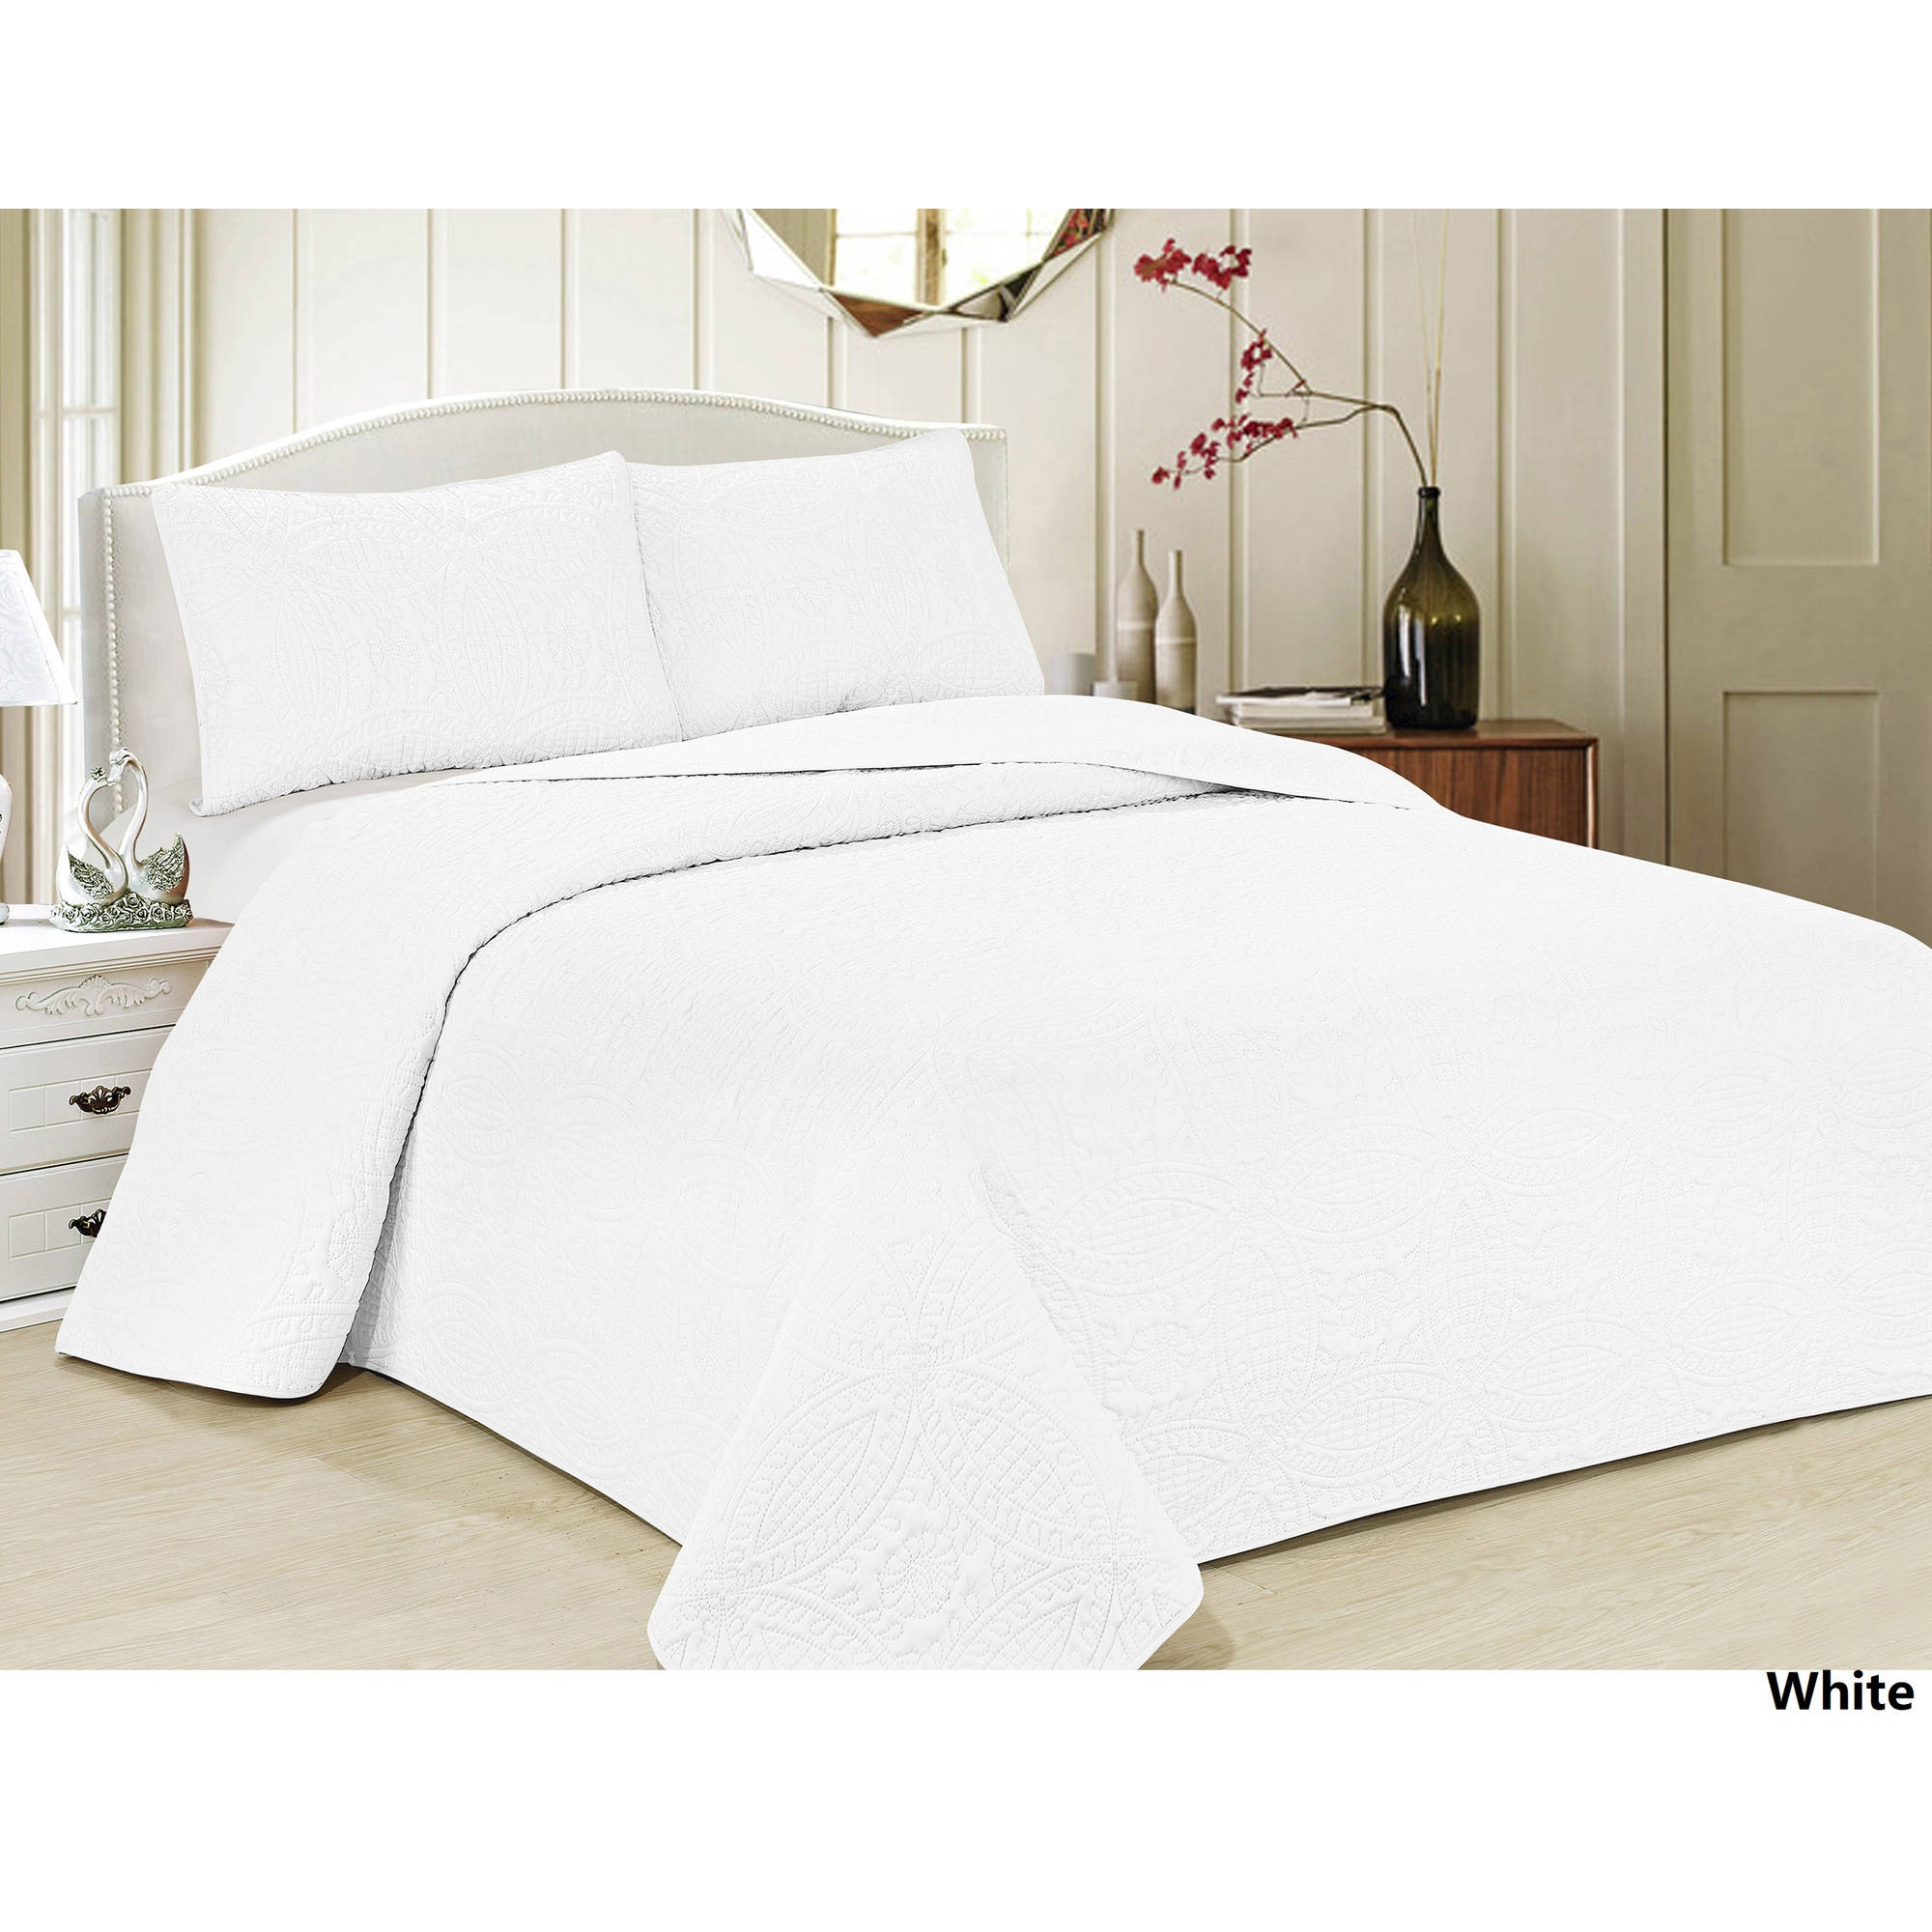 Oversized 3-Piece Bedspread Set with Geometric Pattern-White Color-Queen Size